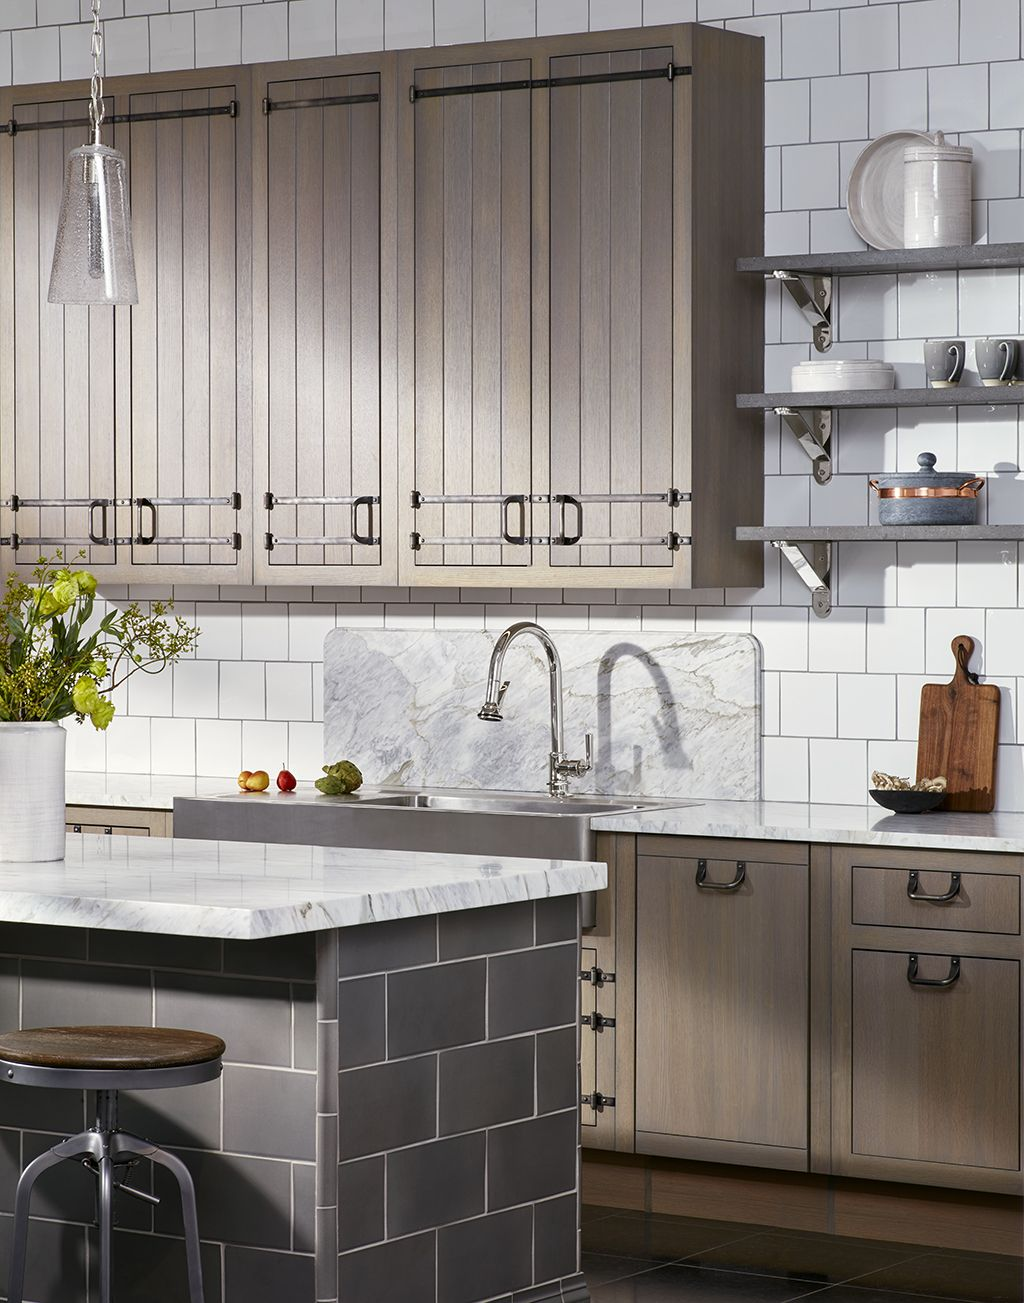 Cabinetry Collections Waterworks Waterworks In 2020 Traditional Kitchen Cabinets Kitchen Design Cabinetry Design